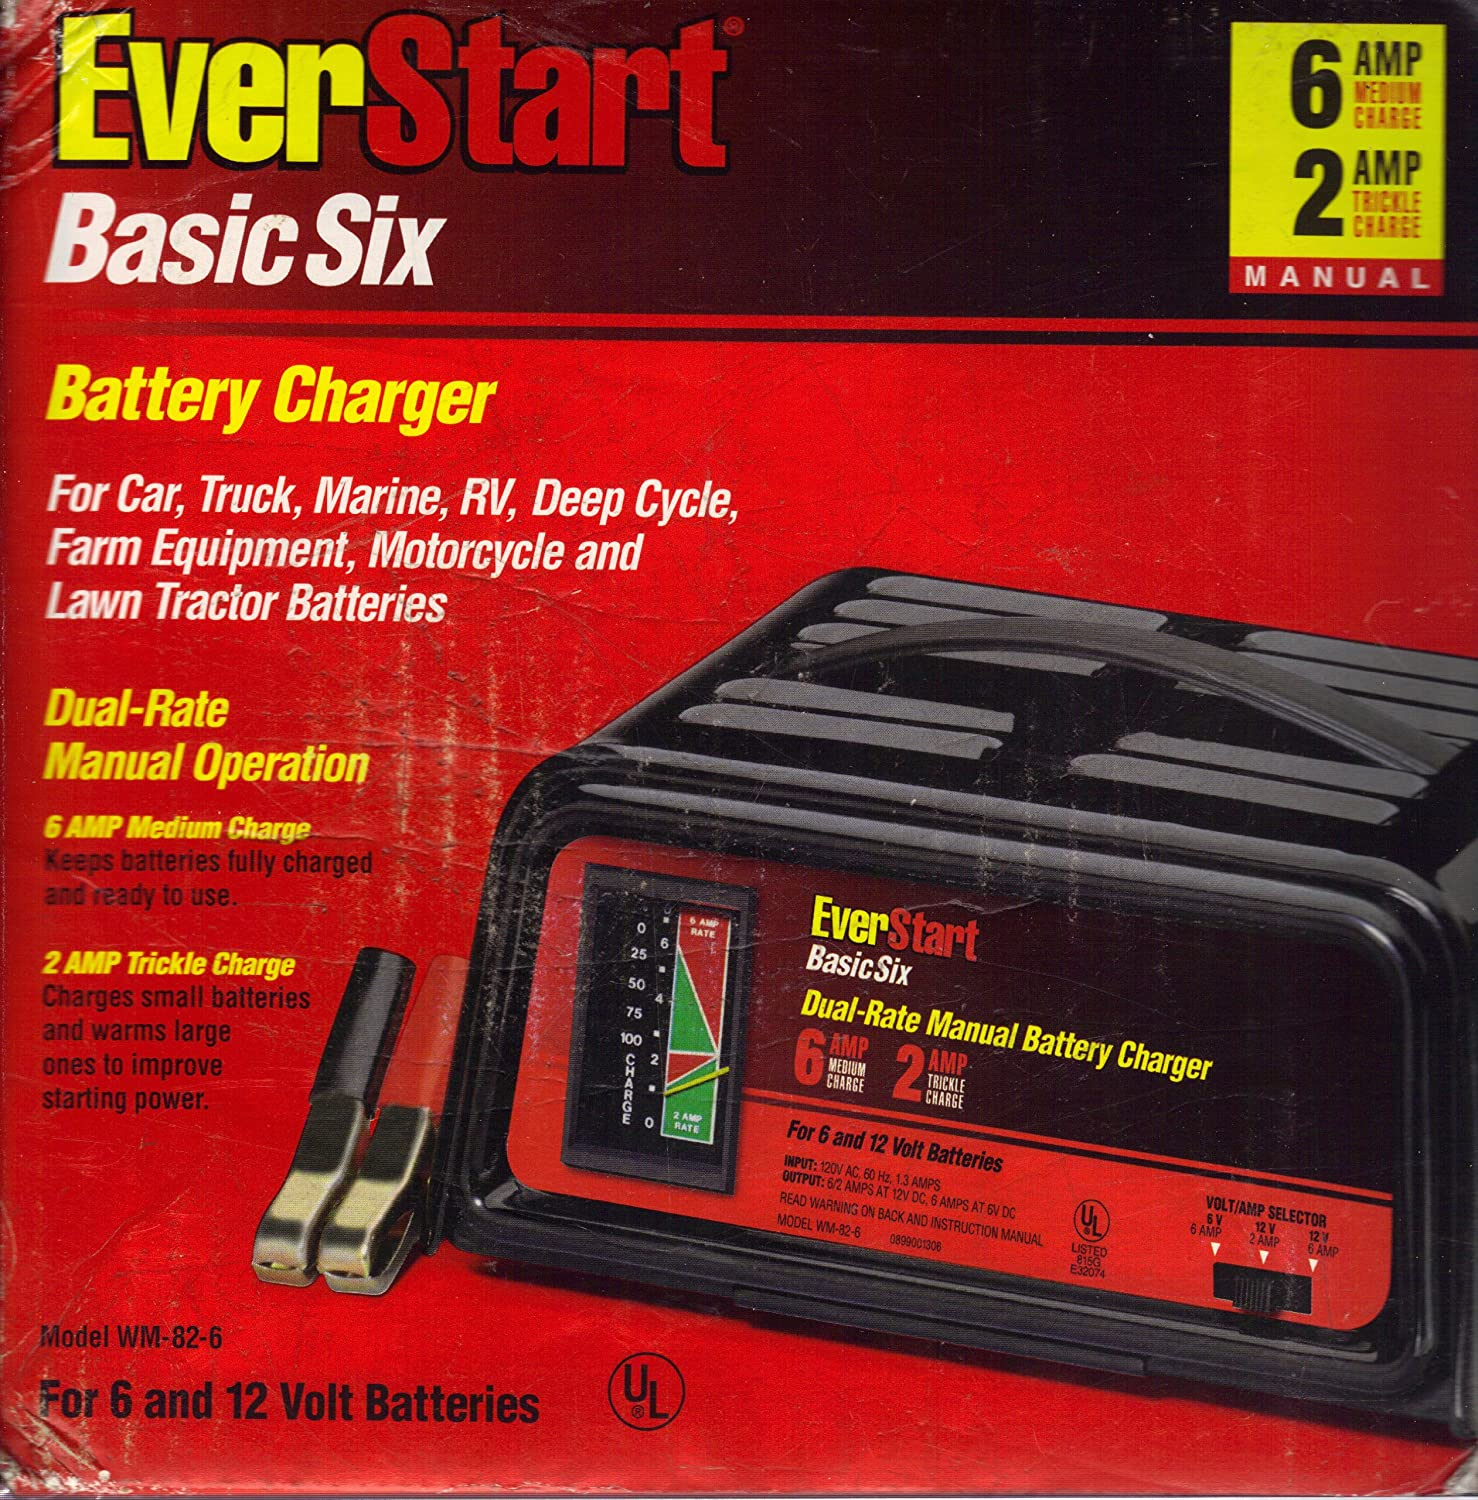 Se 1052 Battery Charger Wiring Diagram furthermore 70 100 Exide Battery Charger Wiring Diagram also Schumacher Se 4022 Wiring Diagram also Yale Battery Charger Wiring Diagram besides 6volt Battery Charger Wiring Diagrams. on psw schumacher battery charger schematics diagram